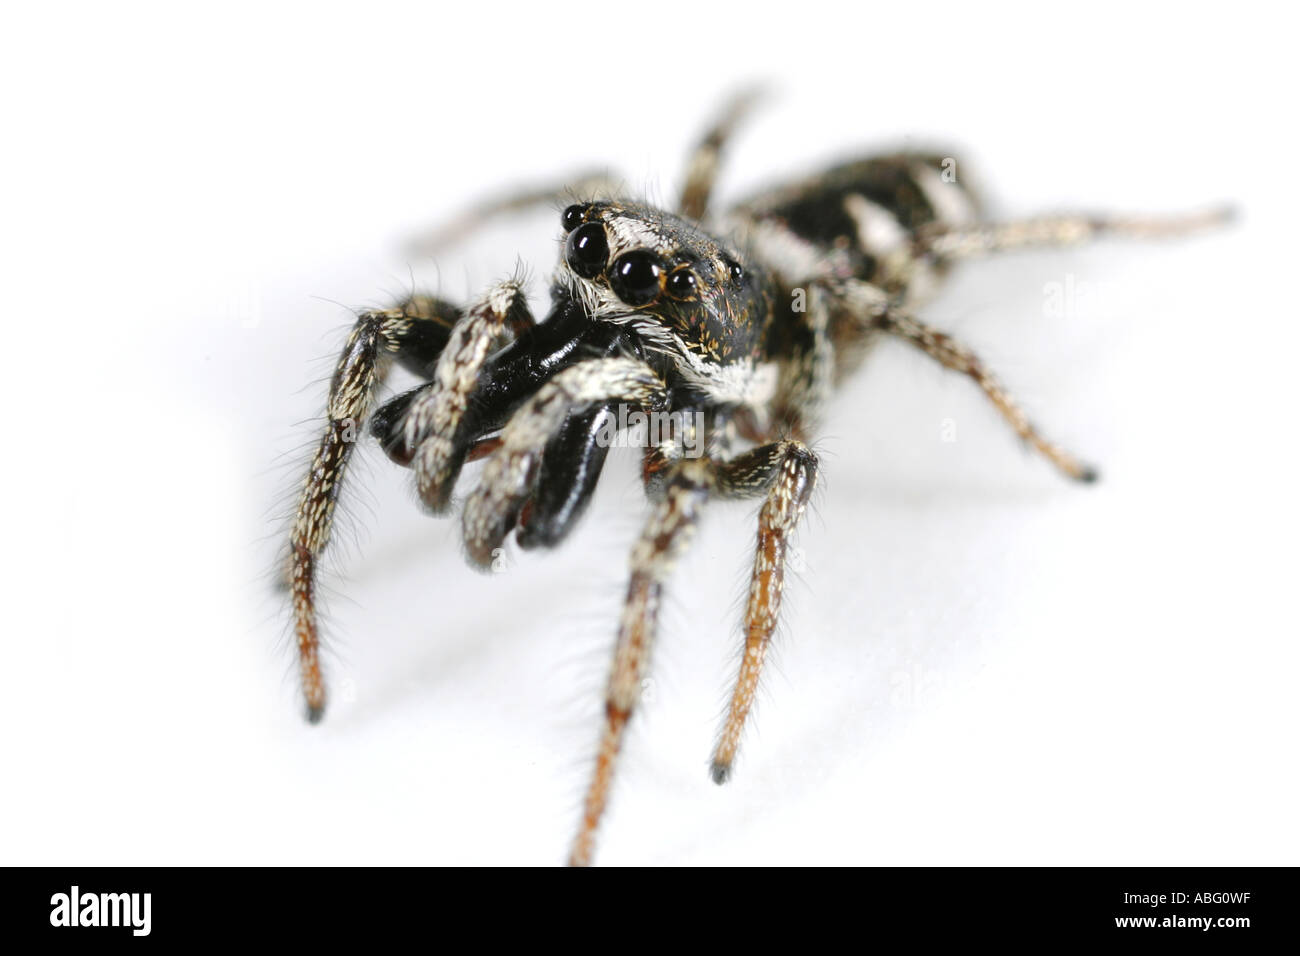 Extreme close up of a male zebra spider, Salticus Scenicus. The Zebra spider is a small jumping spider Stock Photo